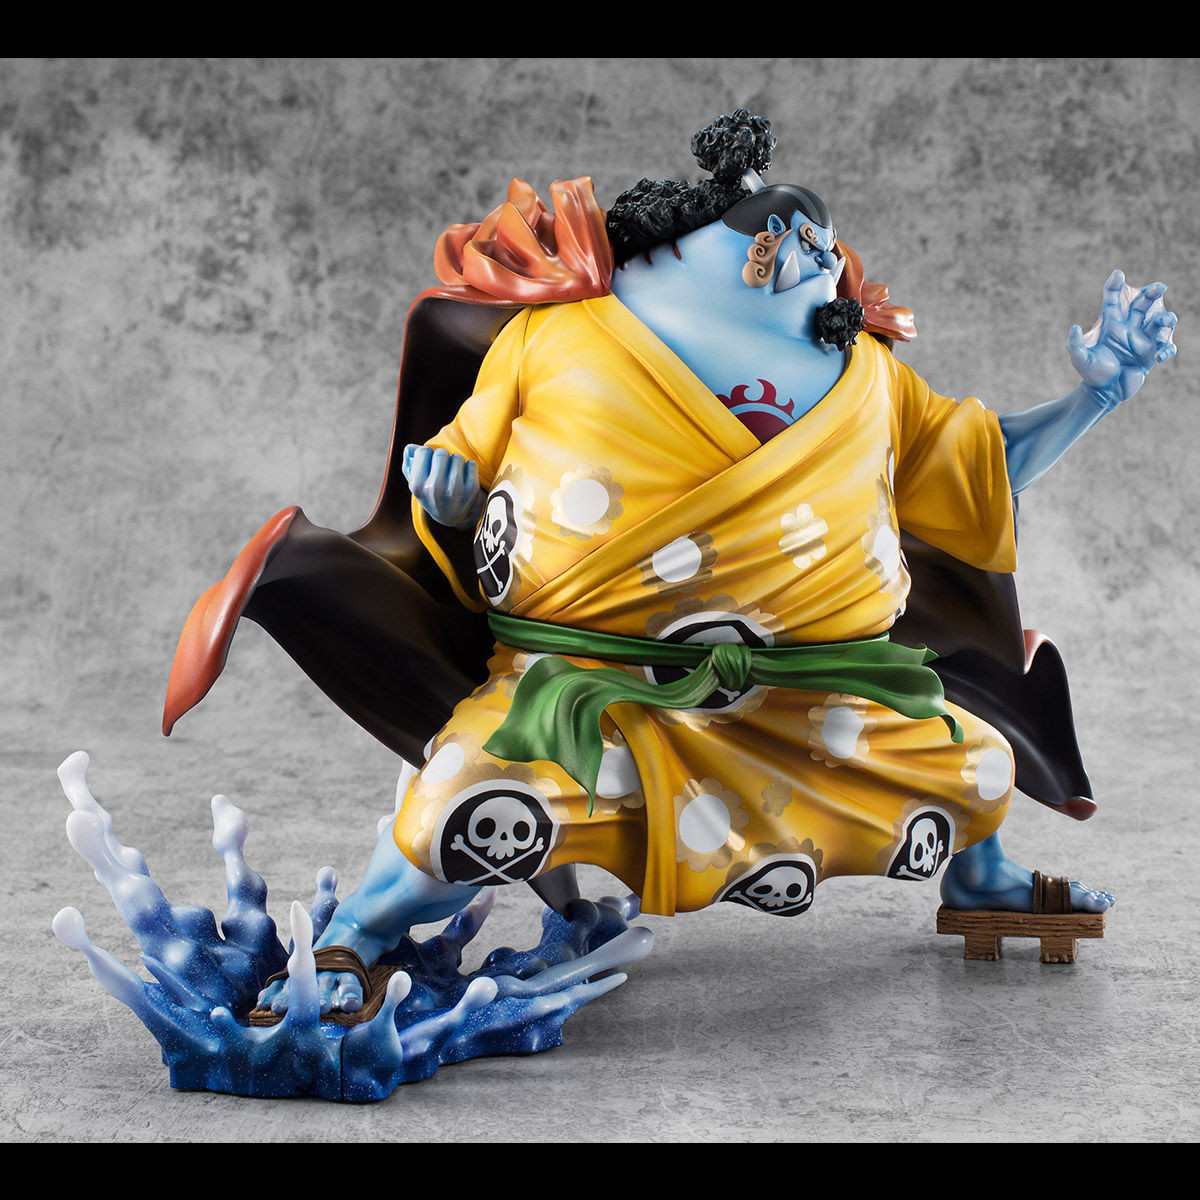 jinbei portrait of pirates sa maximum megahouse figurine one piece. Black Bedroom Furniture Sets. Home Design Ideas